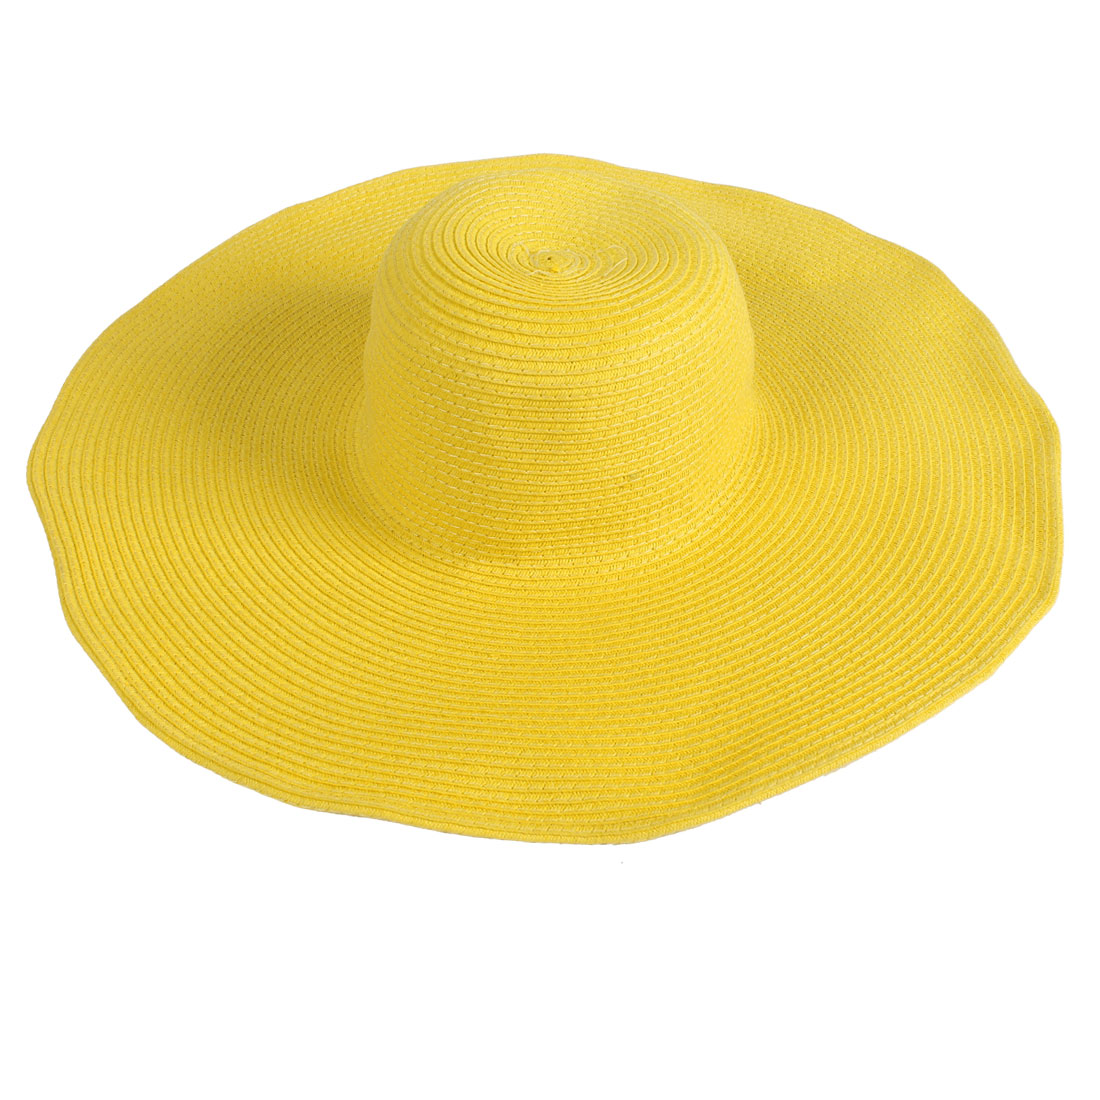 Traveling Hiking Braided Visor Hat Summer Cap Yellow for Woman